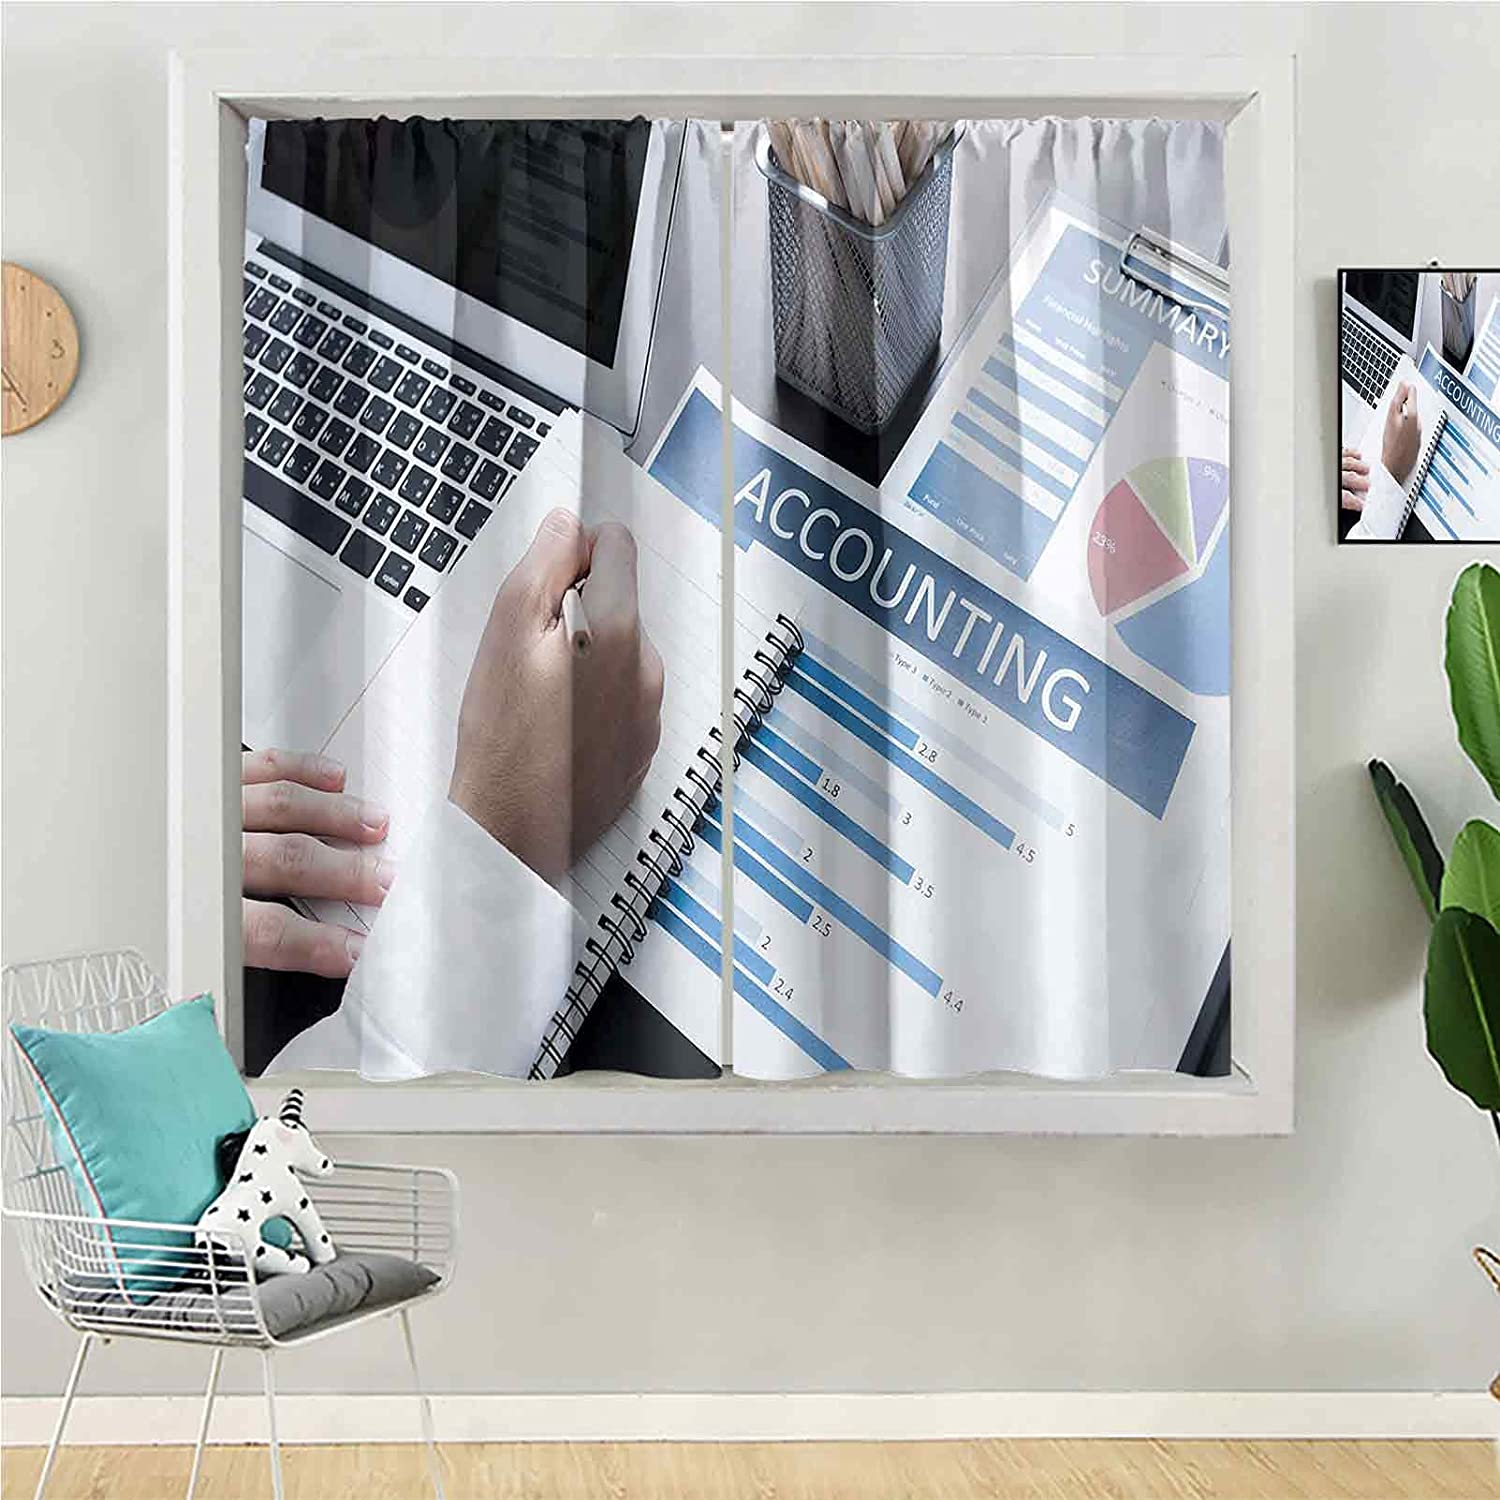 Blackout Curtain 63 inches Long Manufacturer OFFicial shop Outlet SALE for Panel Be Kids Window